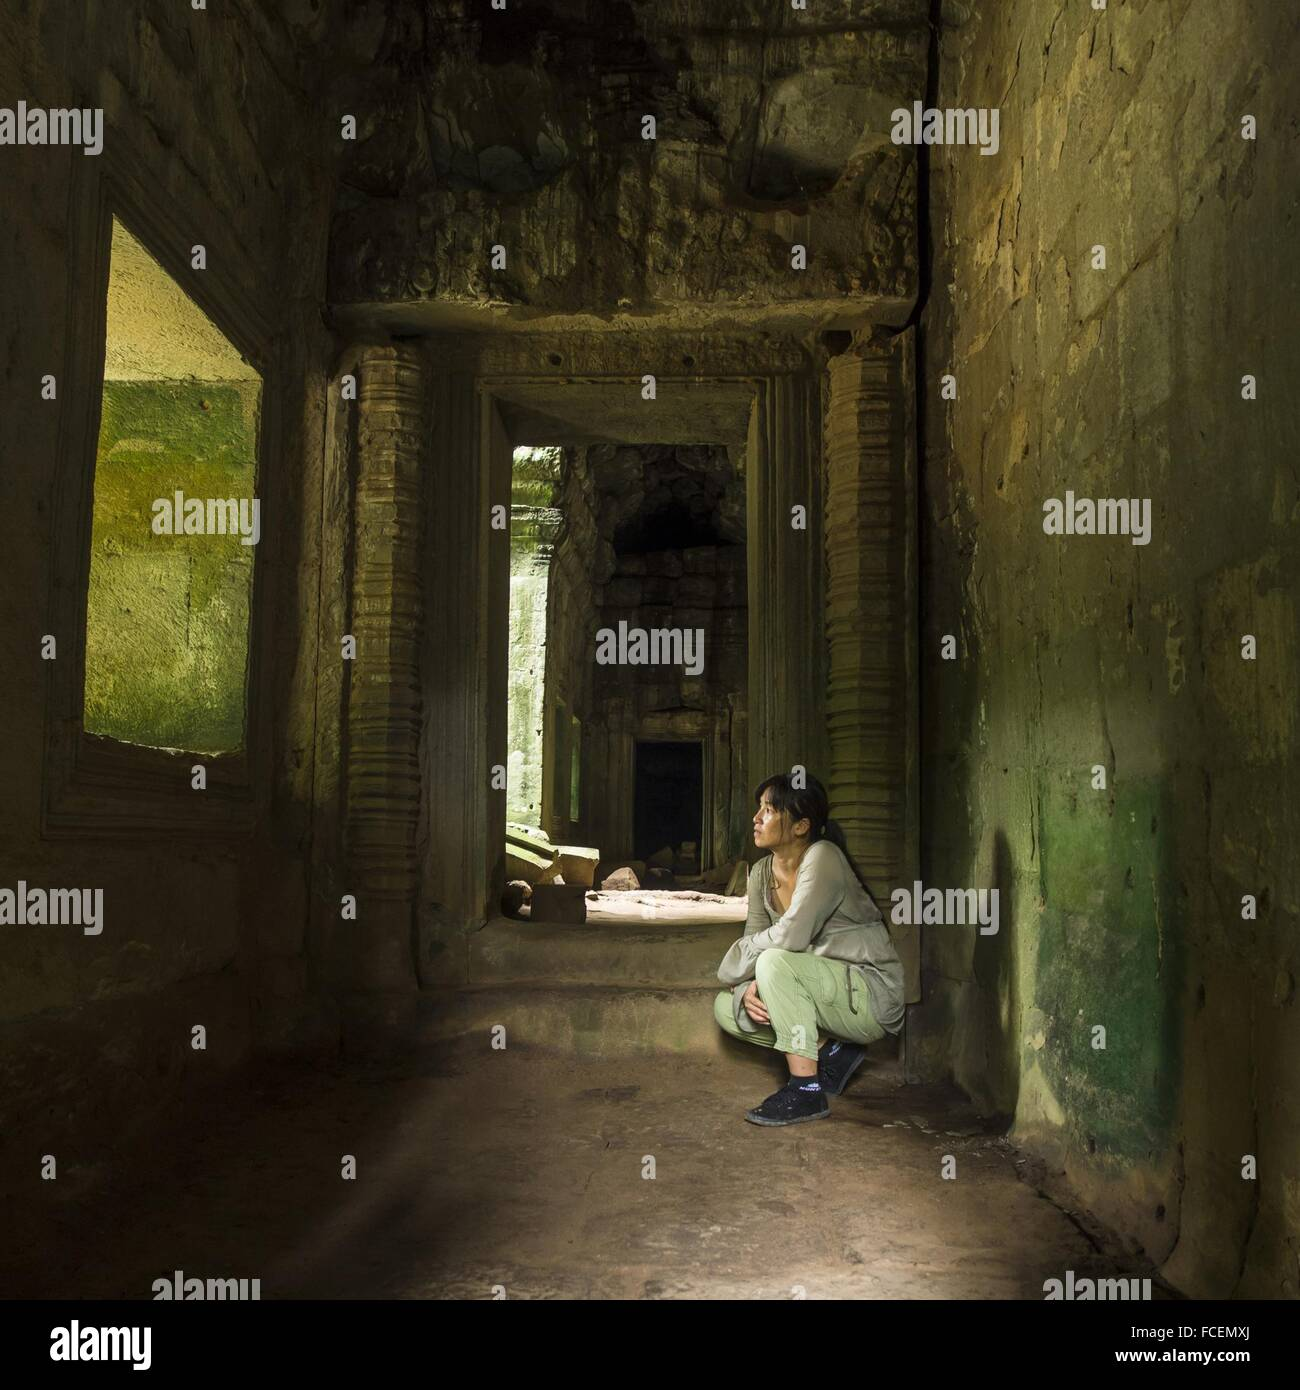 Full Length Of Woman Crouching In Abandoned Home - Stock Image